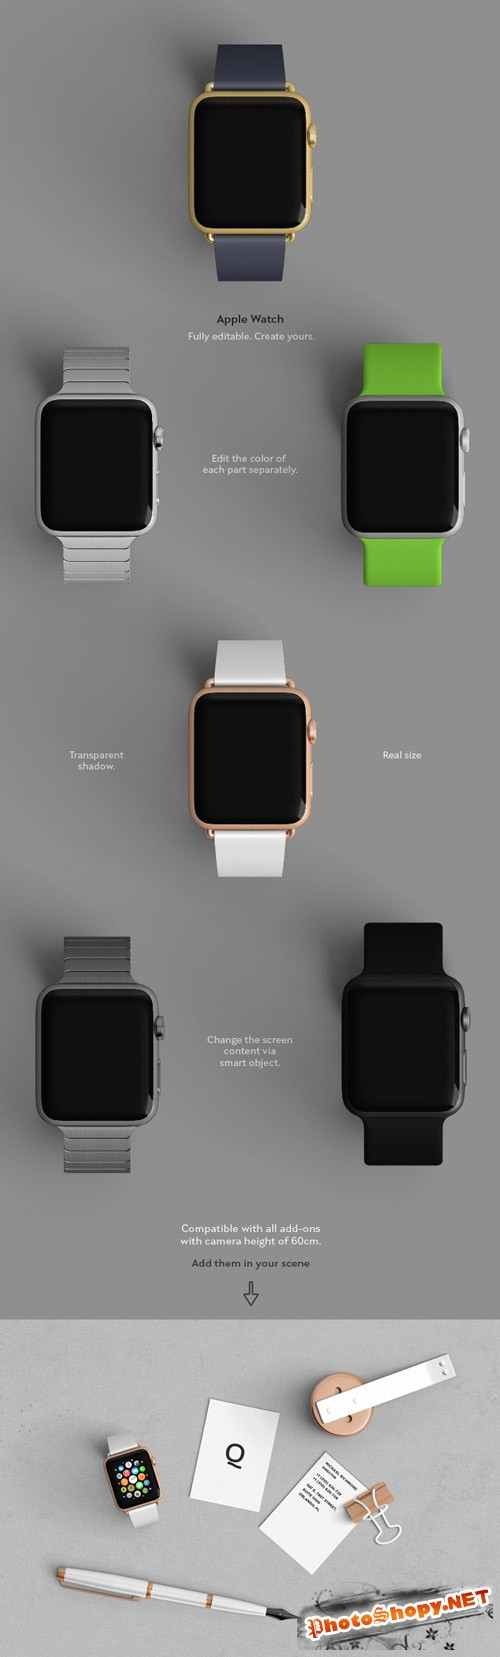 Add-On Apple Smartwatch Mock up PSD